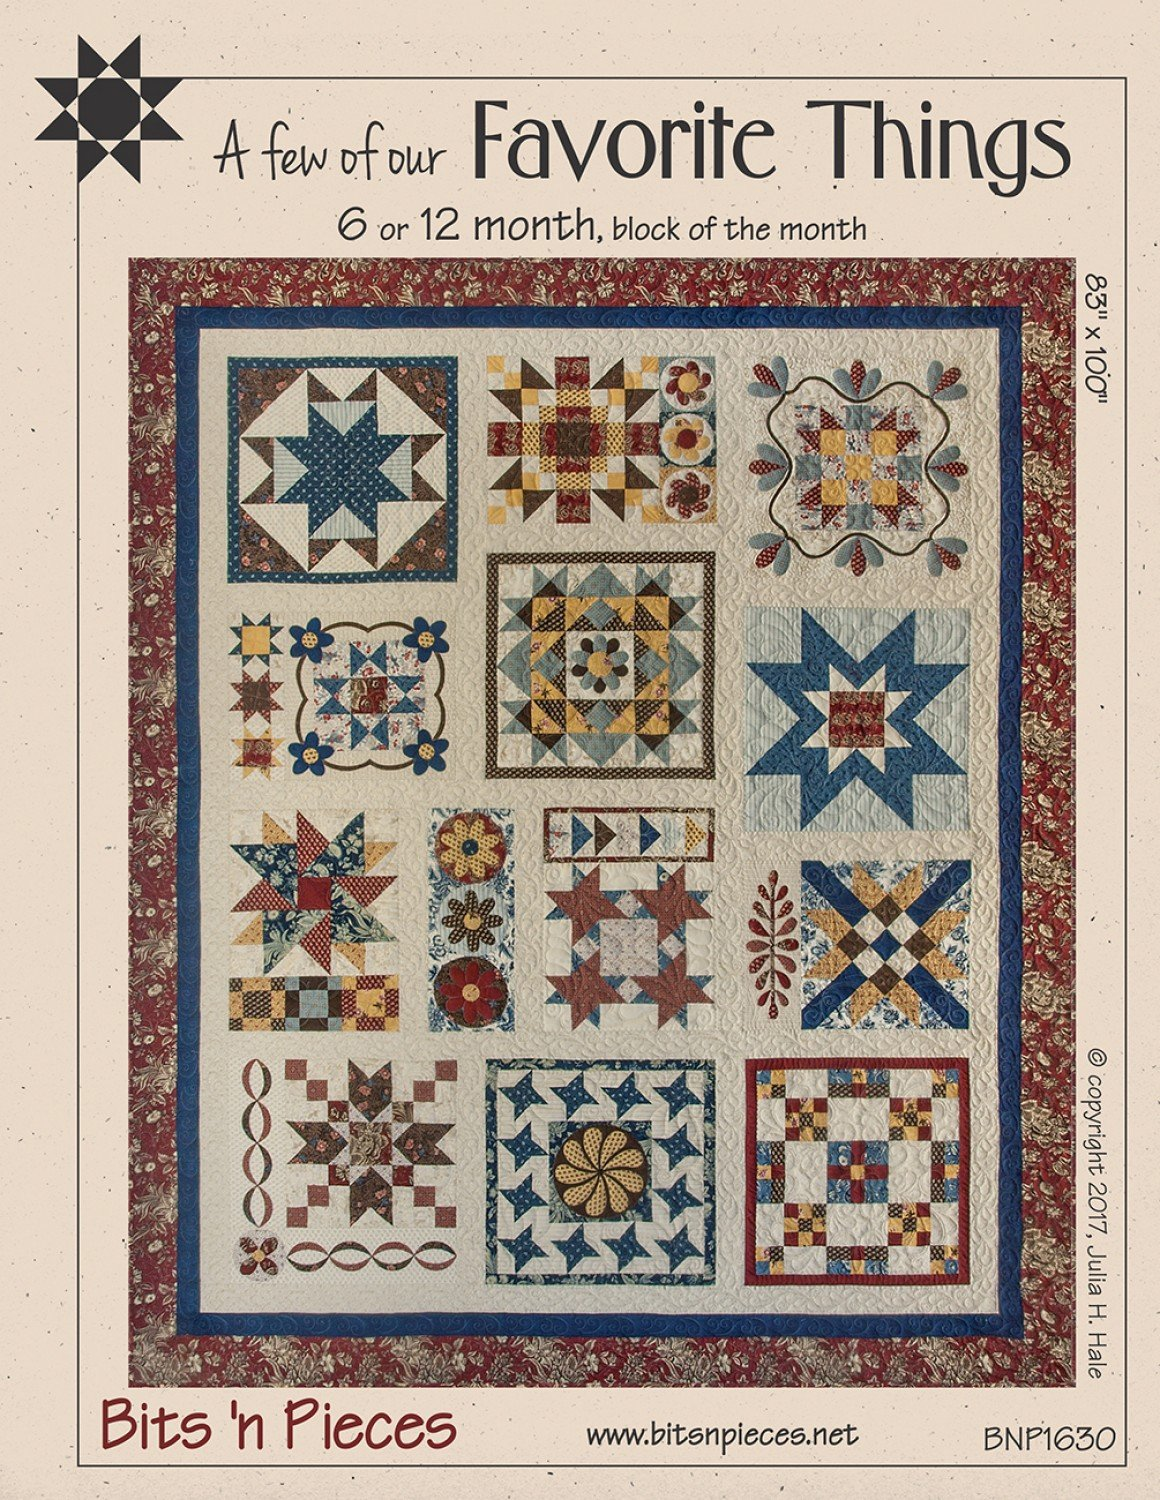 A Few of Our Favorite Things quilt pattern by Bits 'n Pieces BNP1630